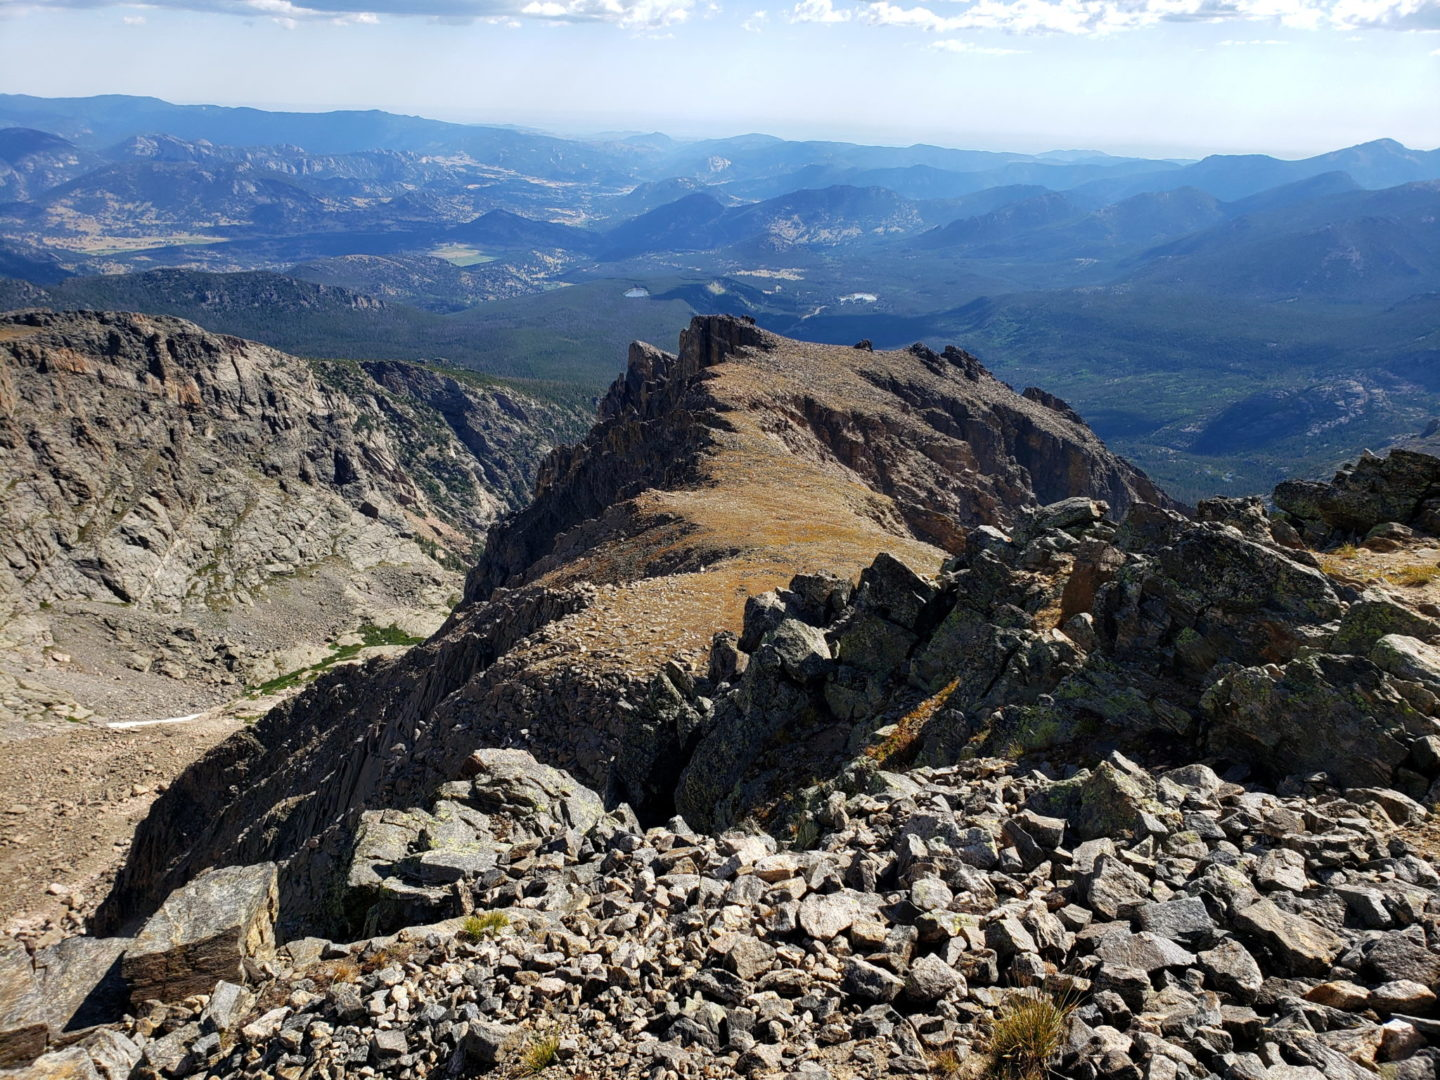 View of the Hallett Peak ridge from the summit